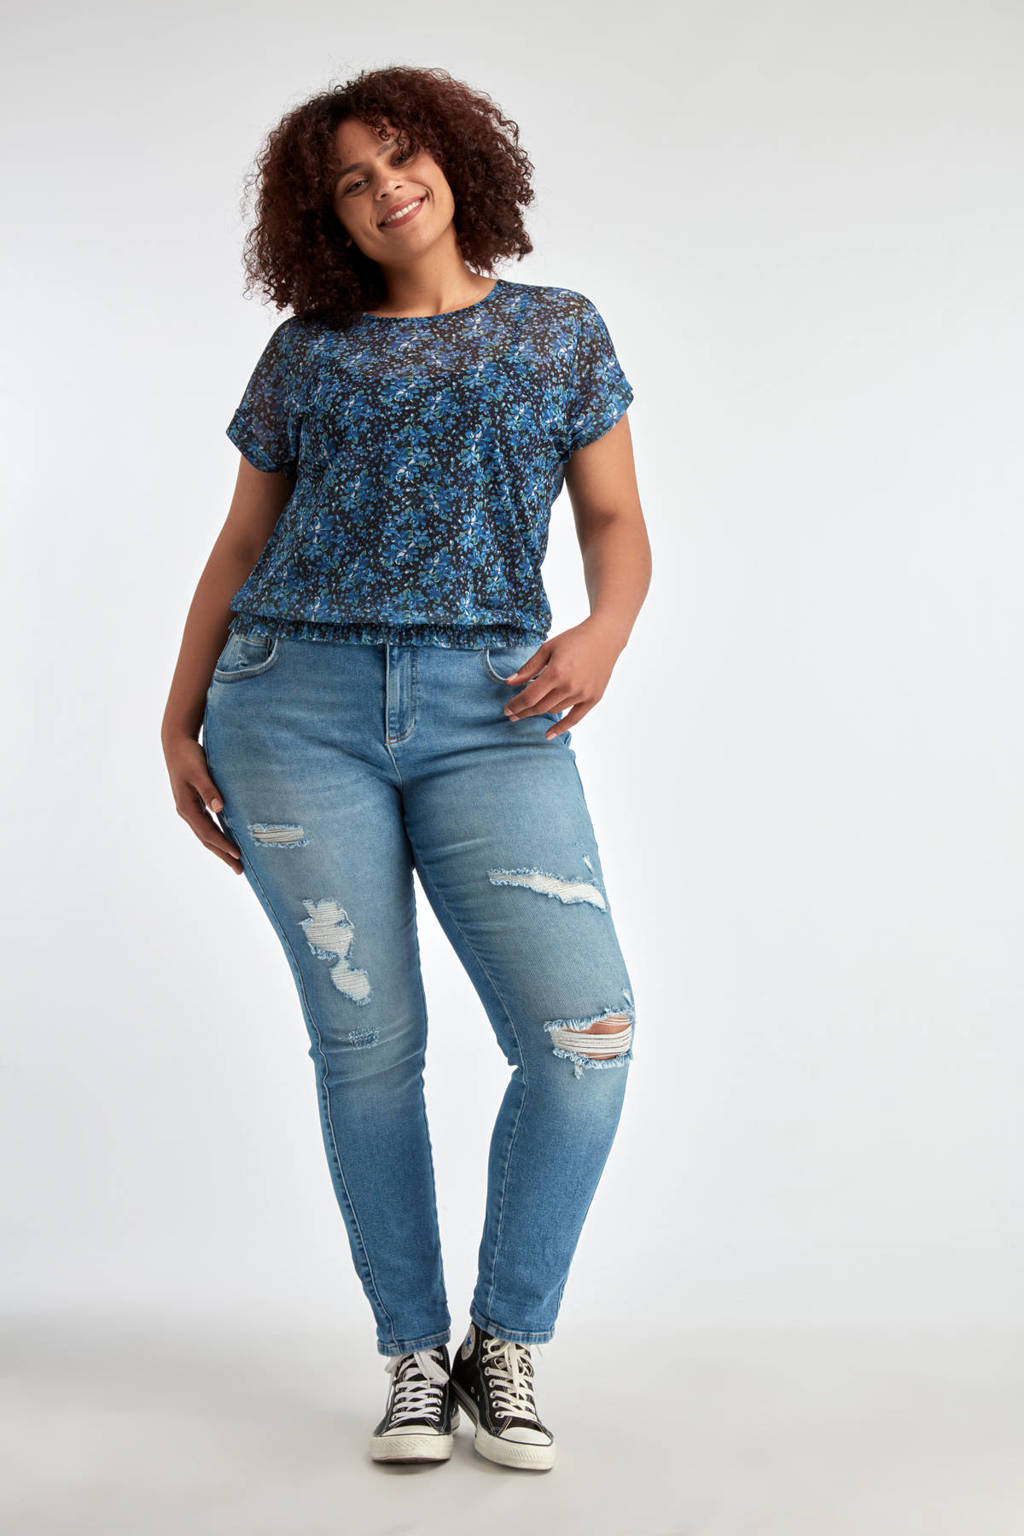 MS Mode semi-transparante top met all over print blauw, Blauw